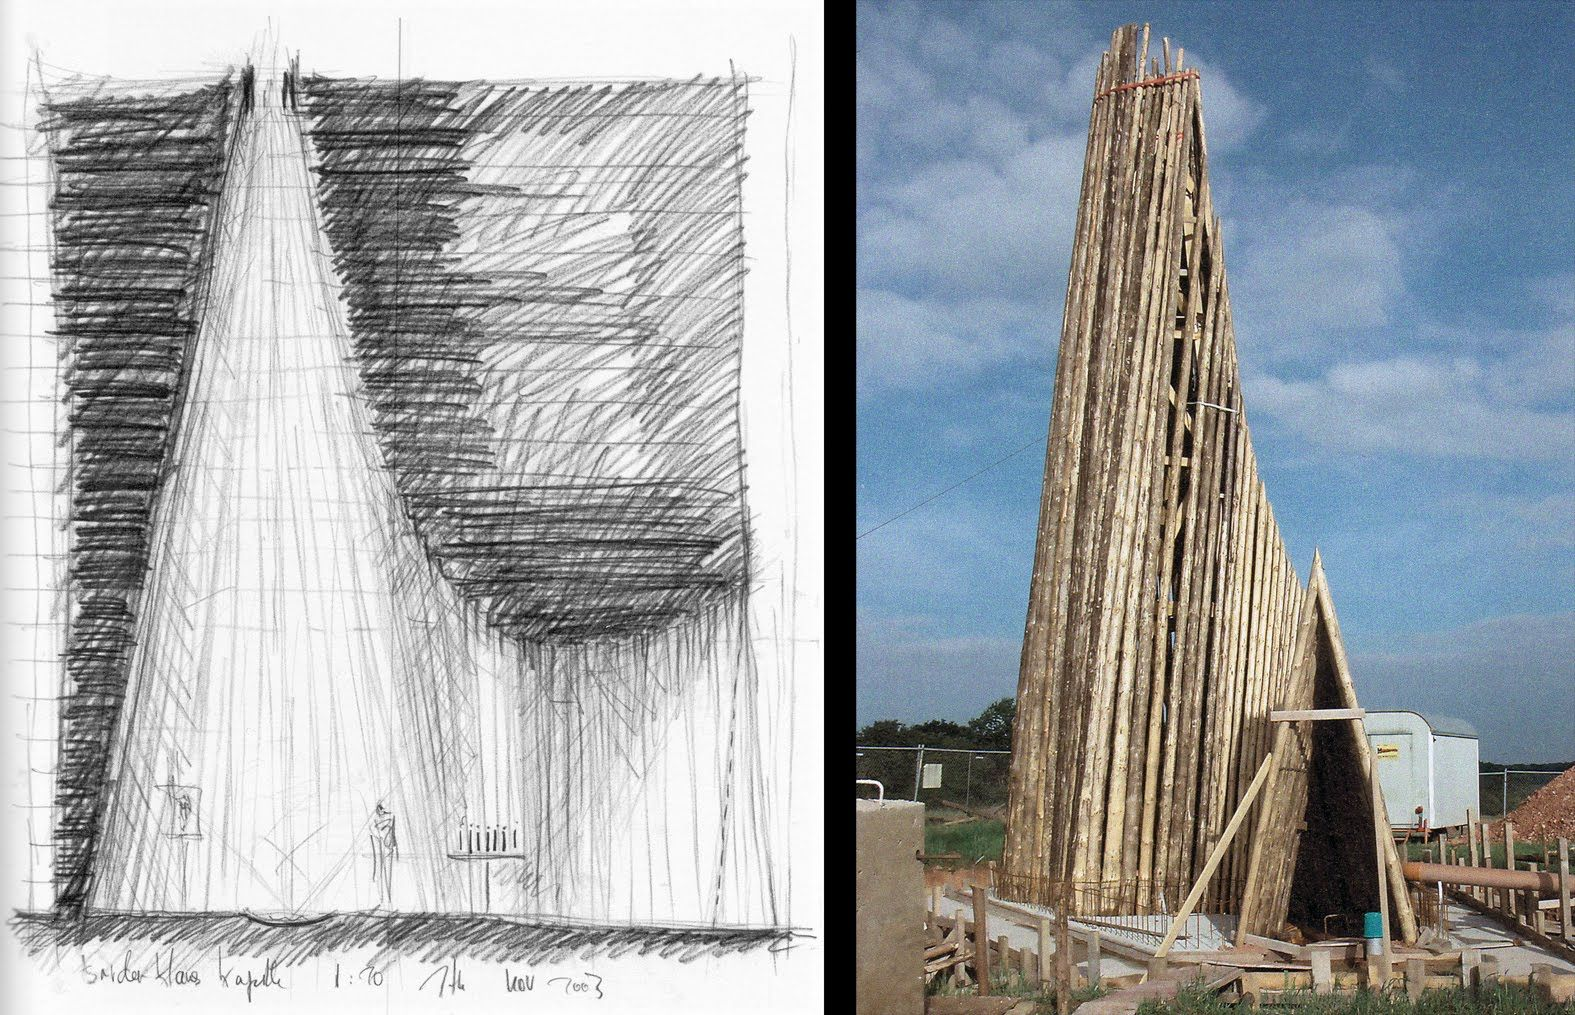 Sketch and construction photo. Bruder Klaus Chapel. Peter